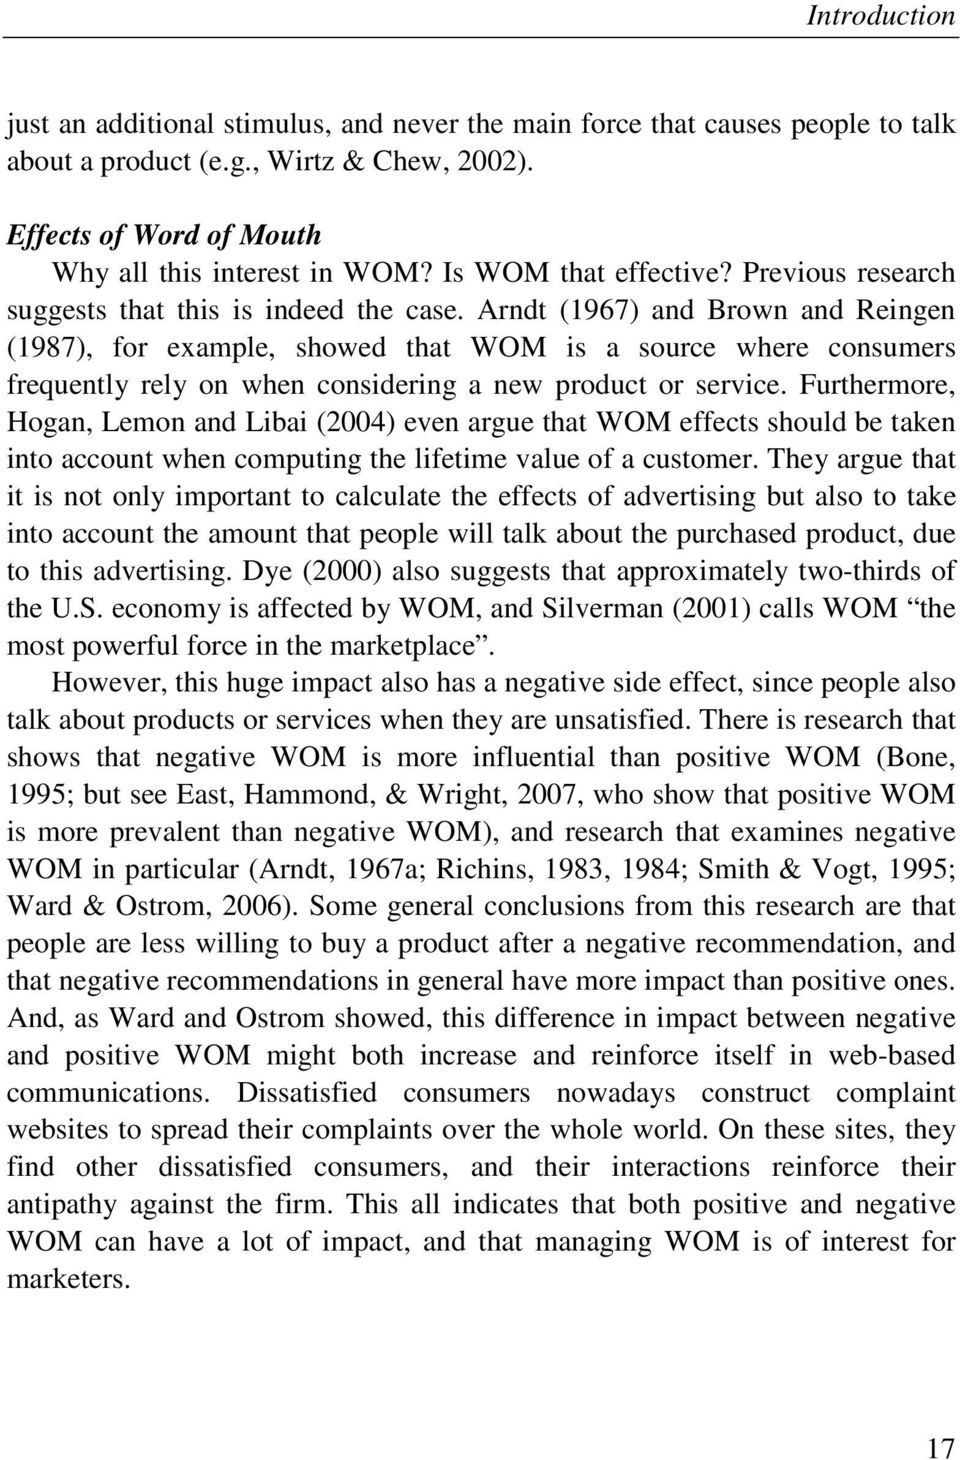 Arndt (1967) and Brown and Reingen (1987), for example, showed that WOM is a source where consumers frequently rely on when considering a new product or service.